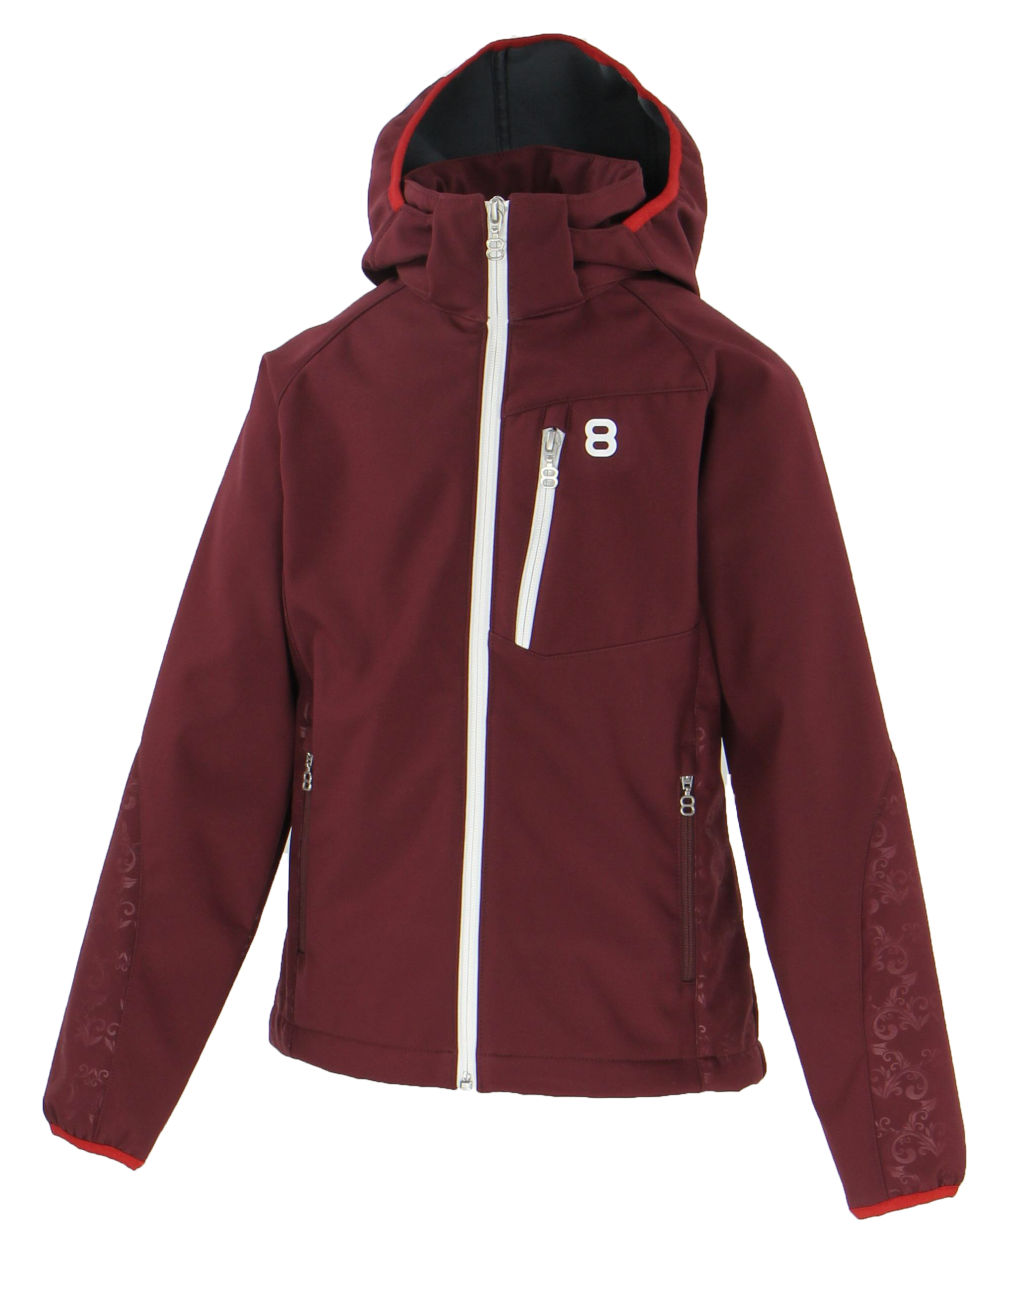 8848 Altitude Castie Jacket Jr